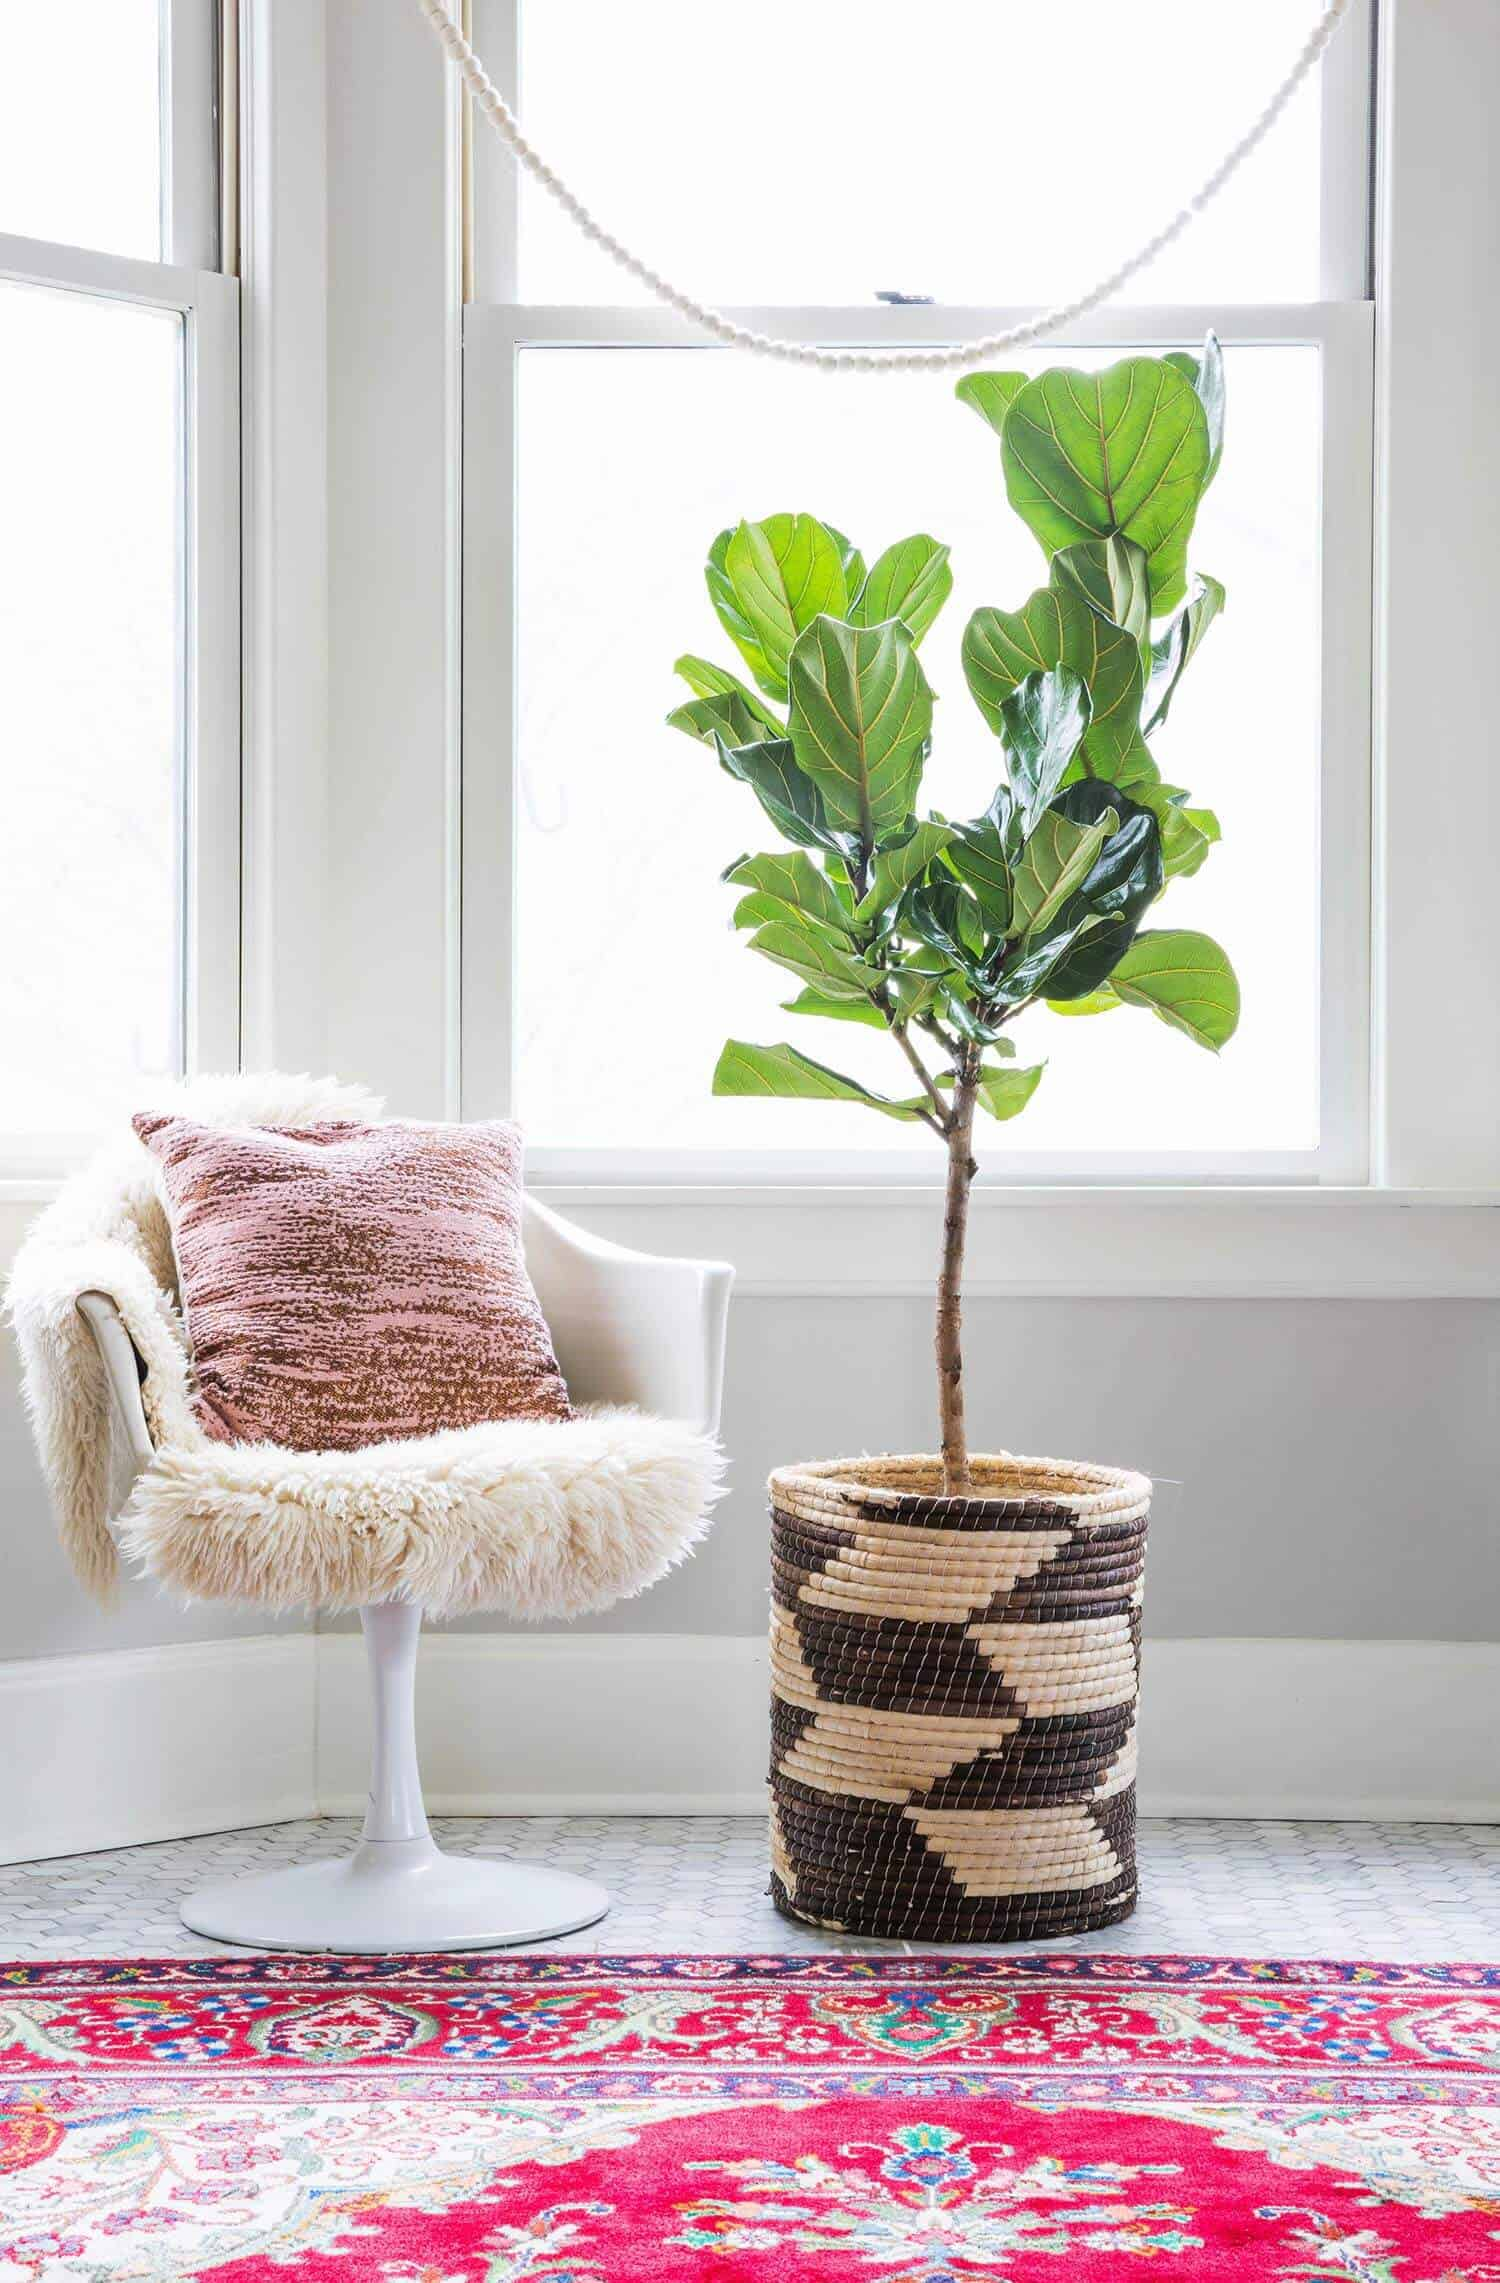 I Am Sure You All Have Heard Of The Fiddle Leaf Fig Tree Also Known As Ficus Lyrata They A Retion Being Beautiful And Quite